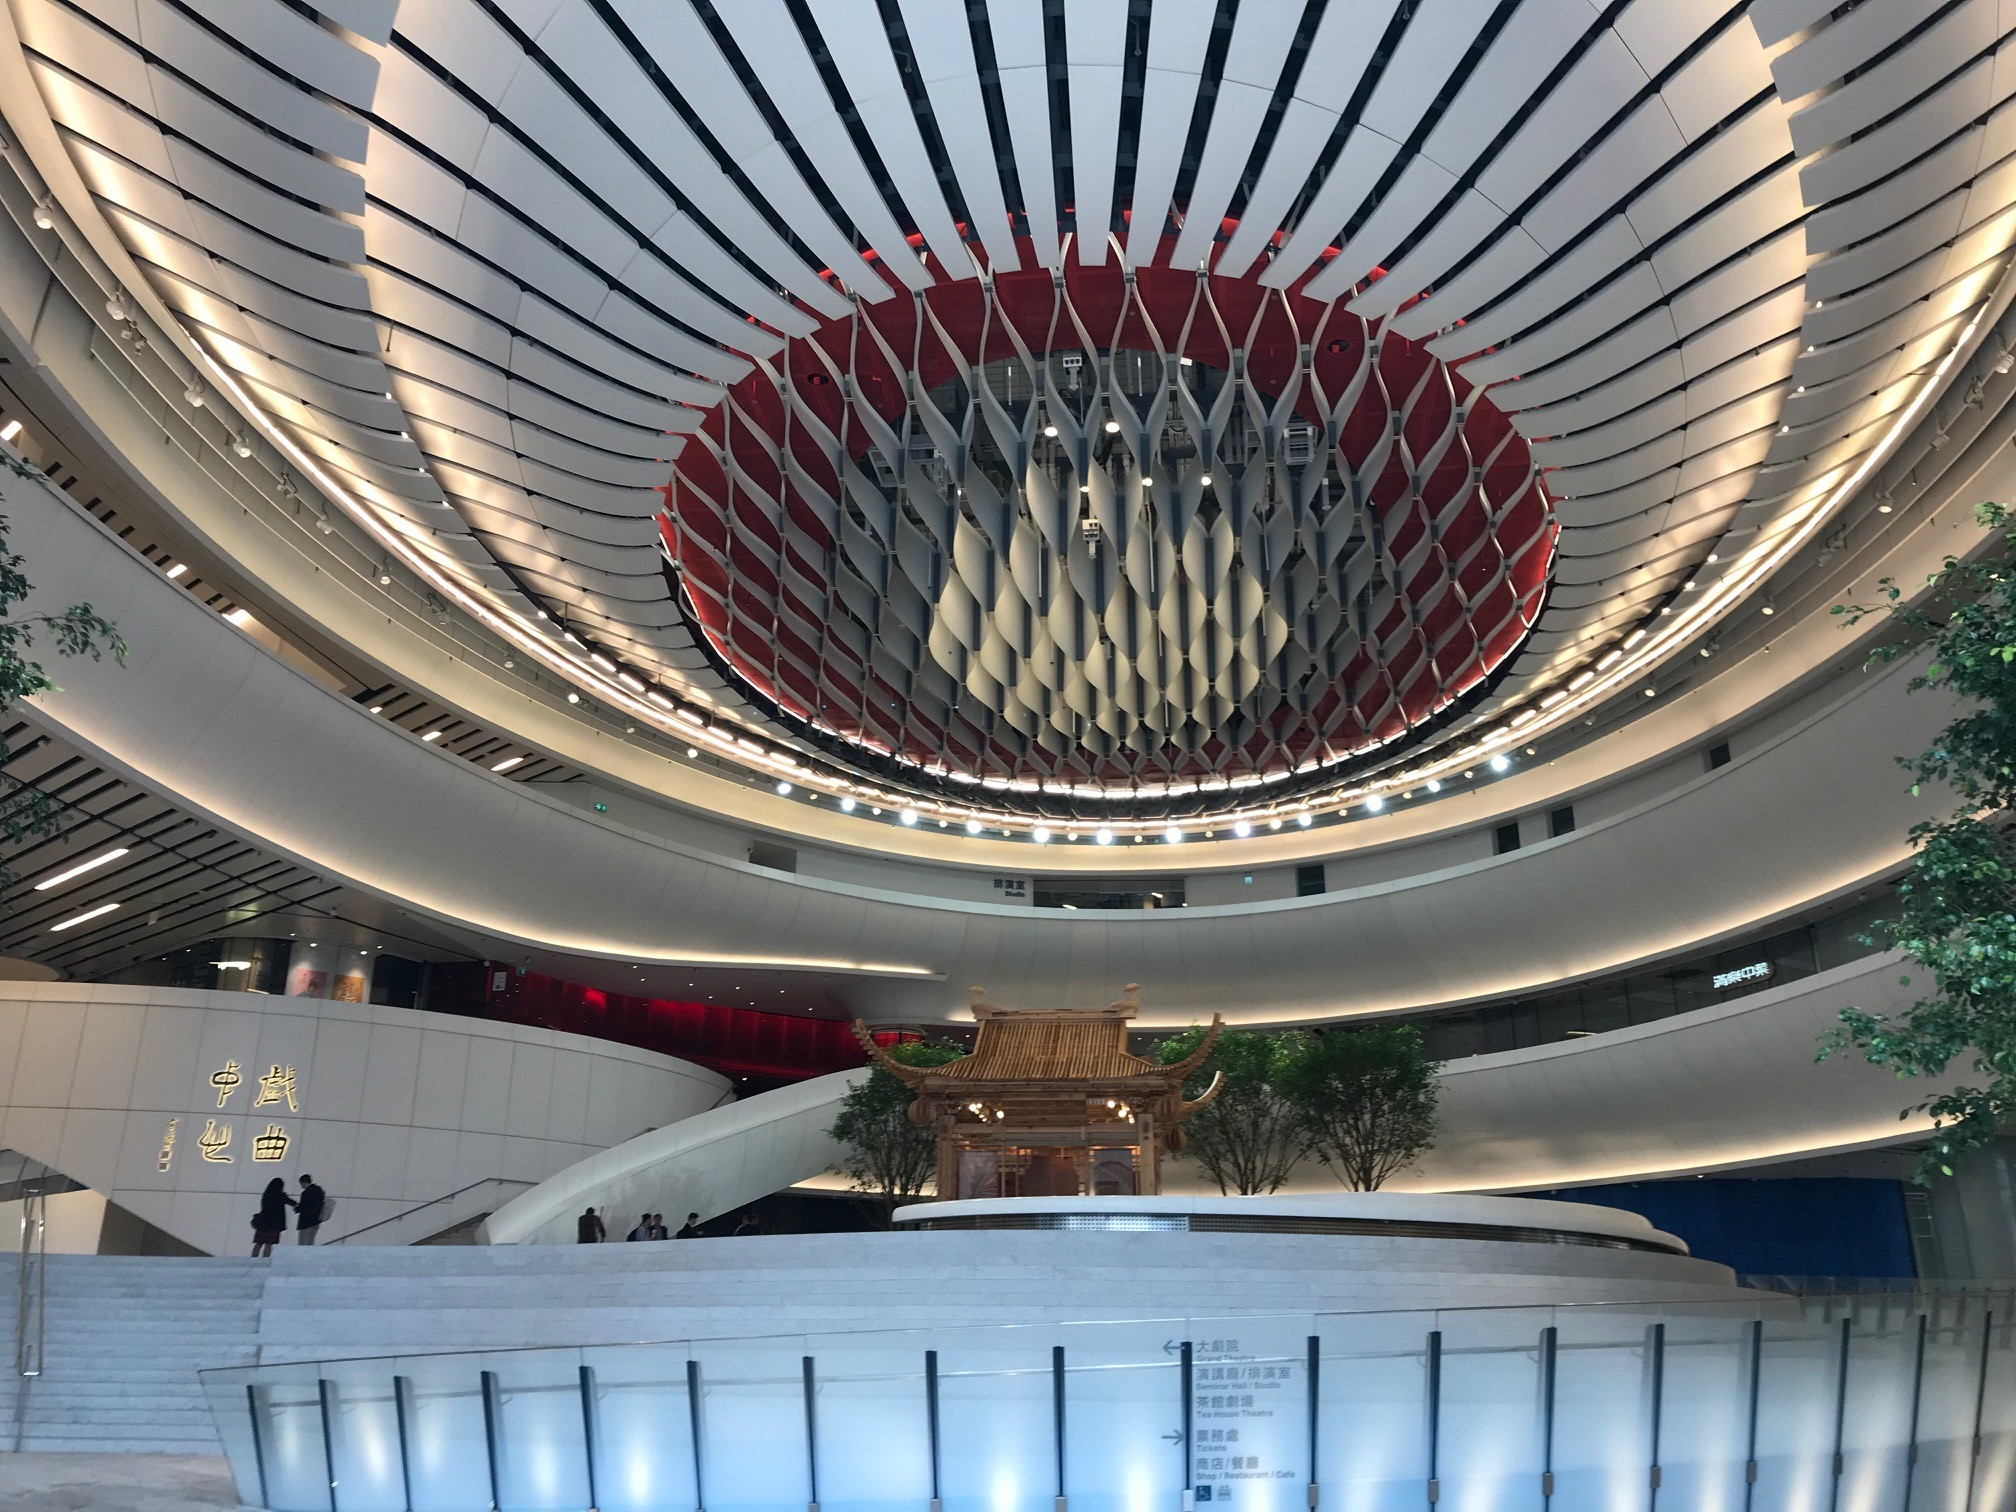 Our HK team tours the new Xiqu Centre with the American Acoustical Society